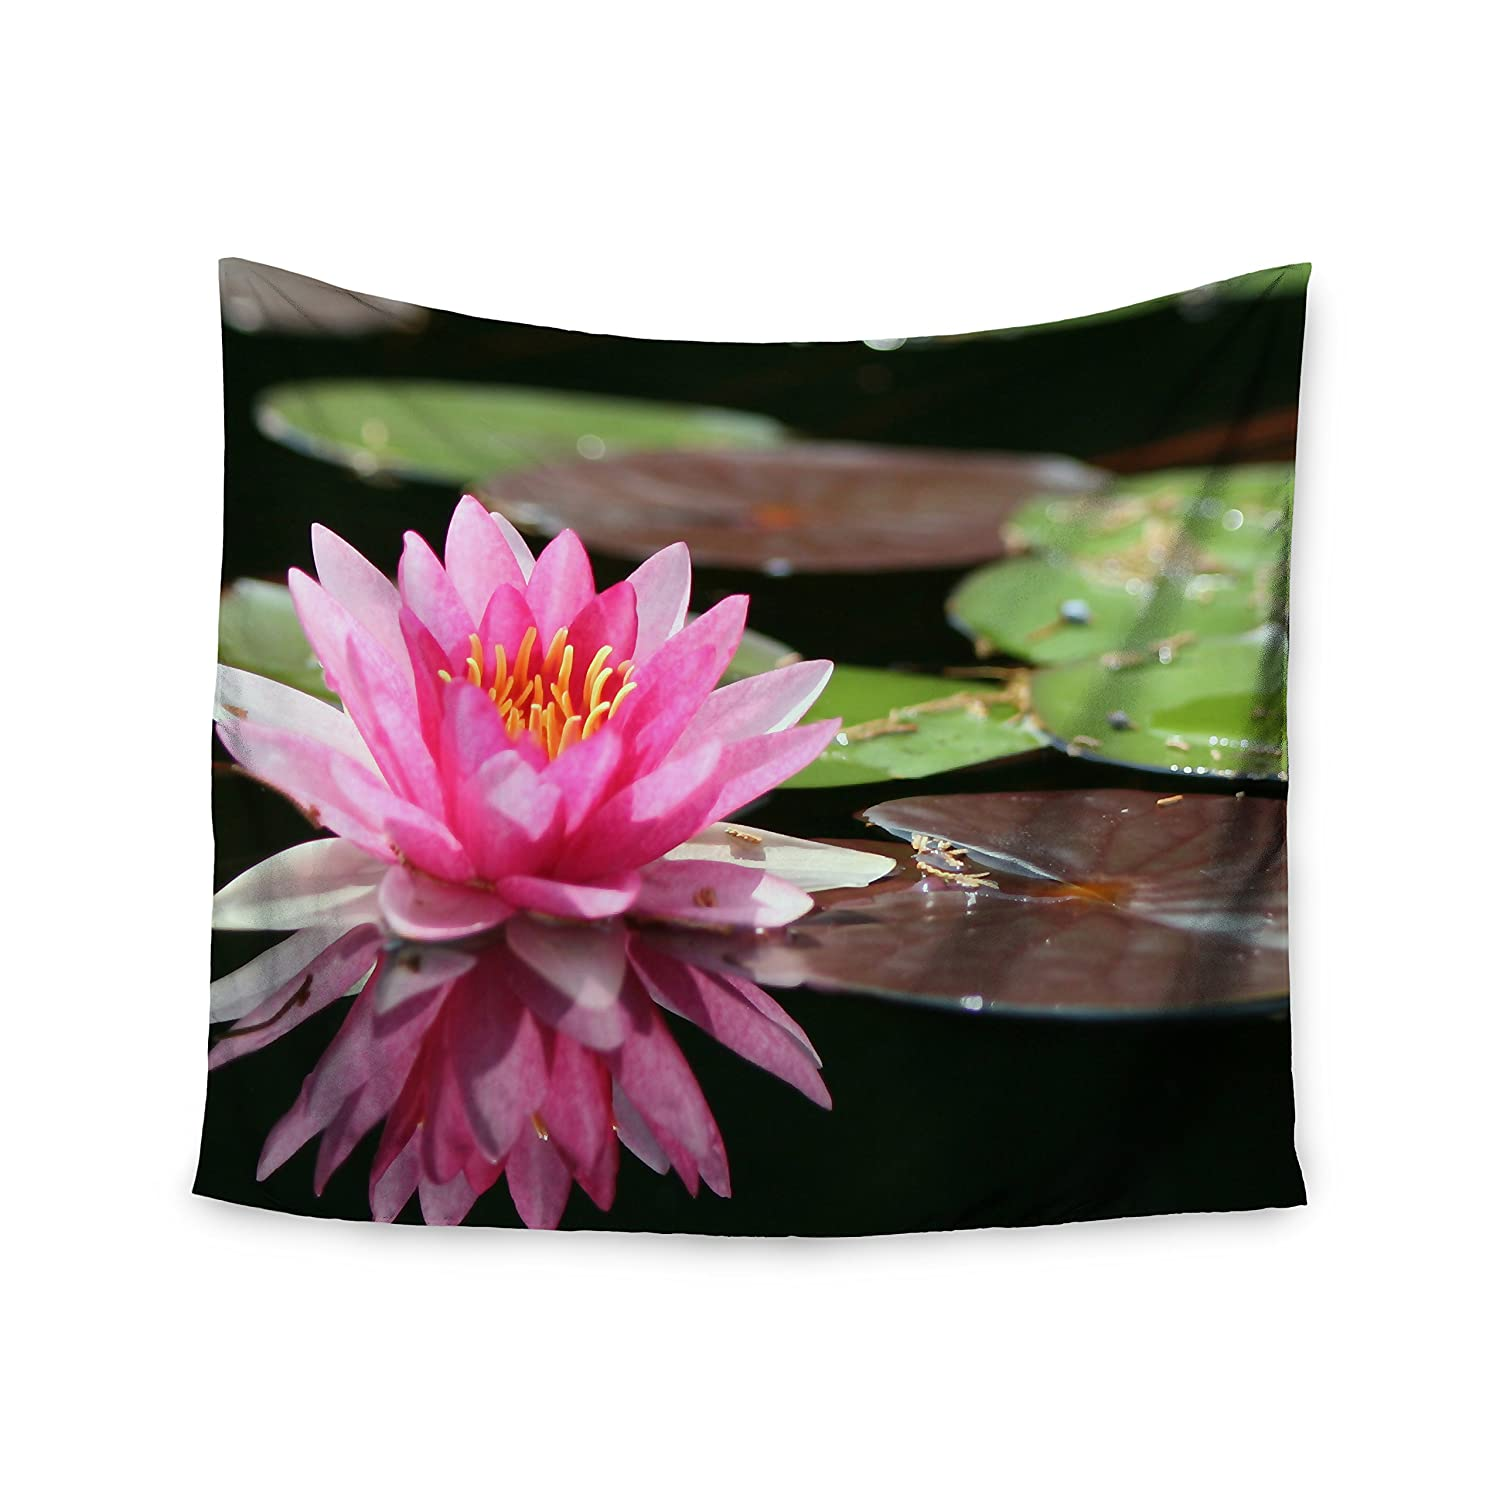 68 X 80 Kess InHouse Angie Turner Water Lily Green Pink Wall Tapestry